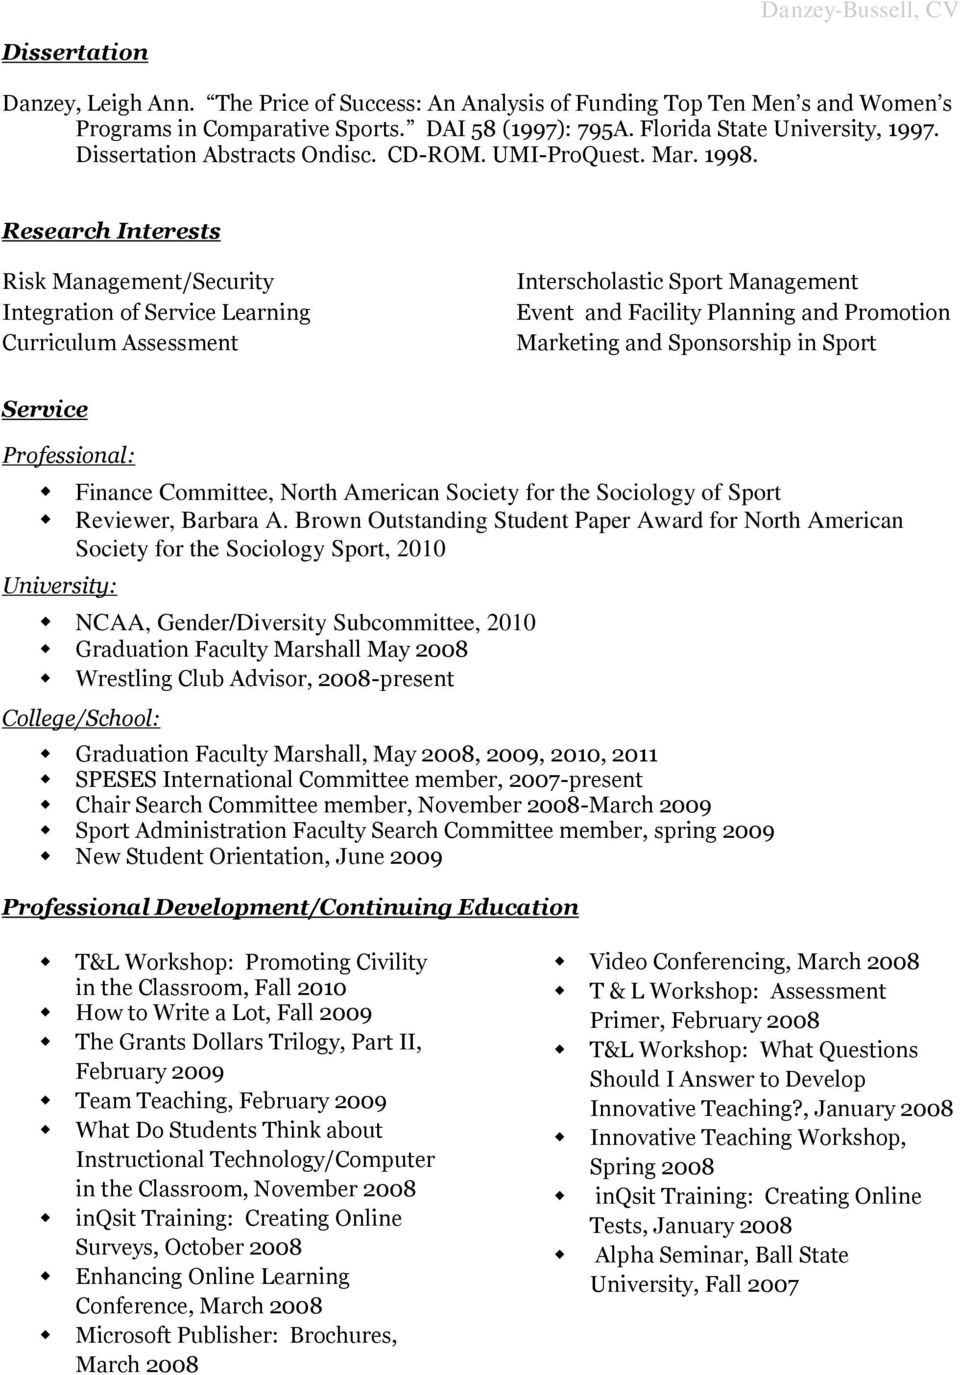 Research Interests Risk Management/Security Integration of Service Learning Curriculum Assessment Interscholastic Sport Management Event and Facility Planning and Promotion Marketing and Sponsorship